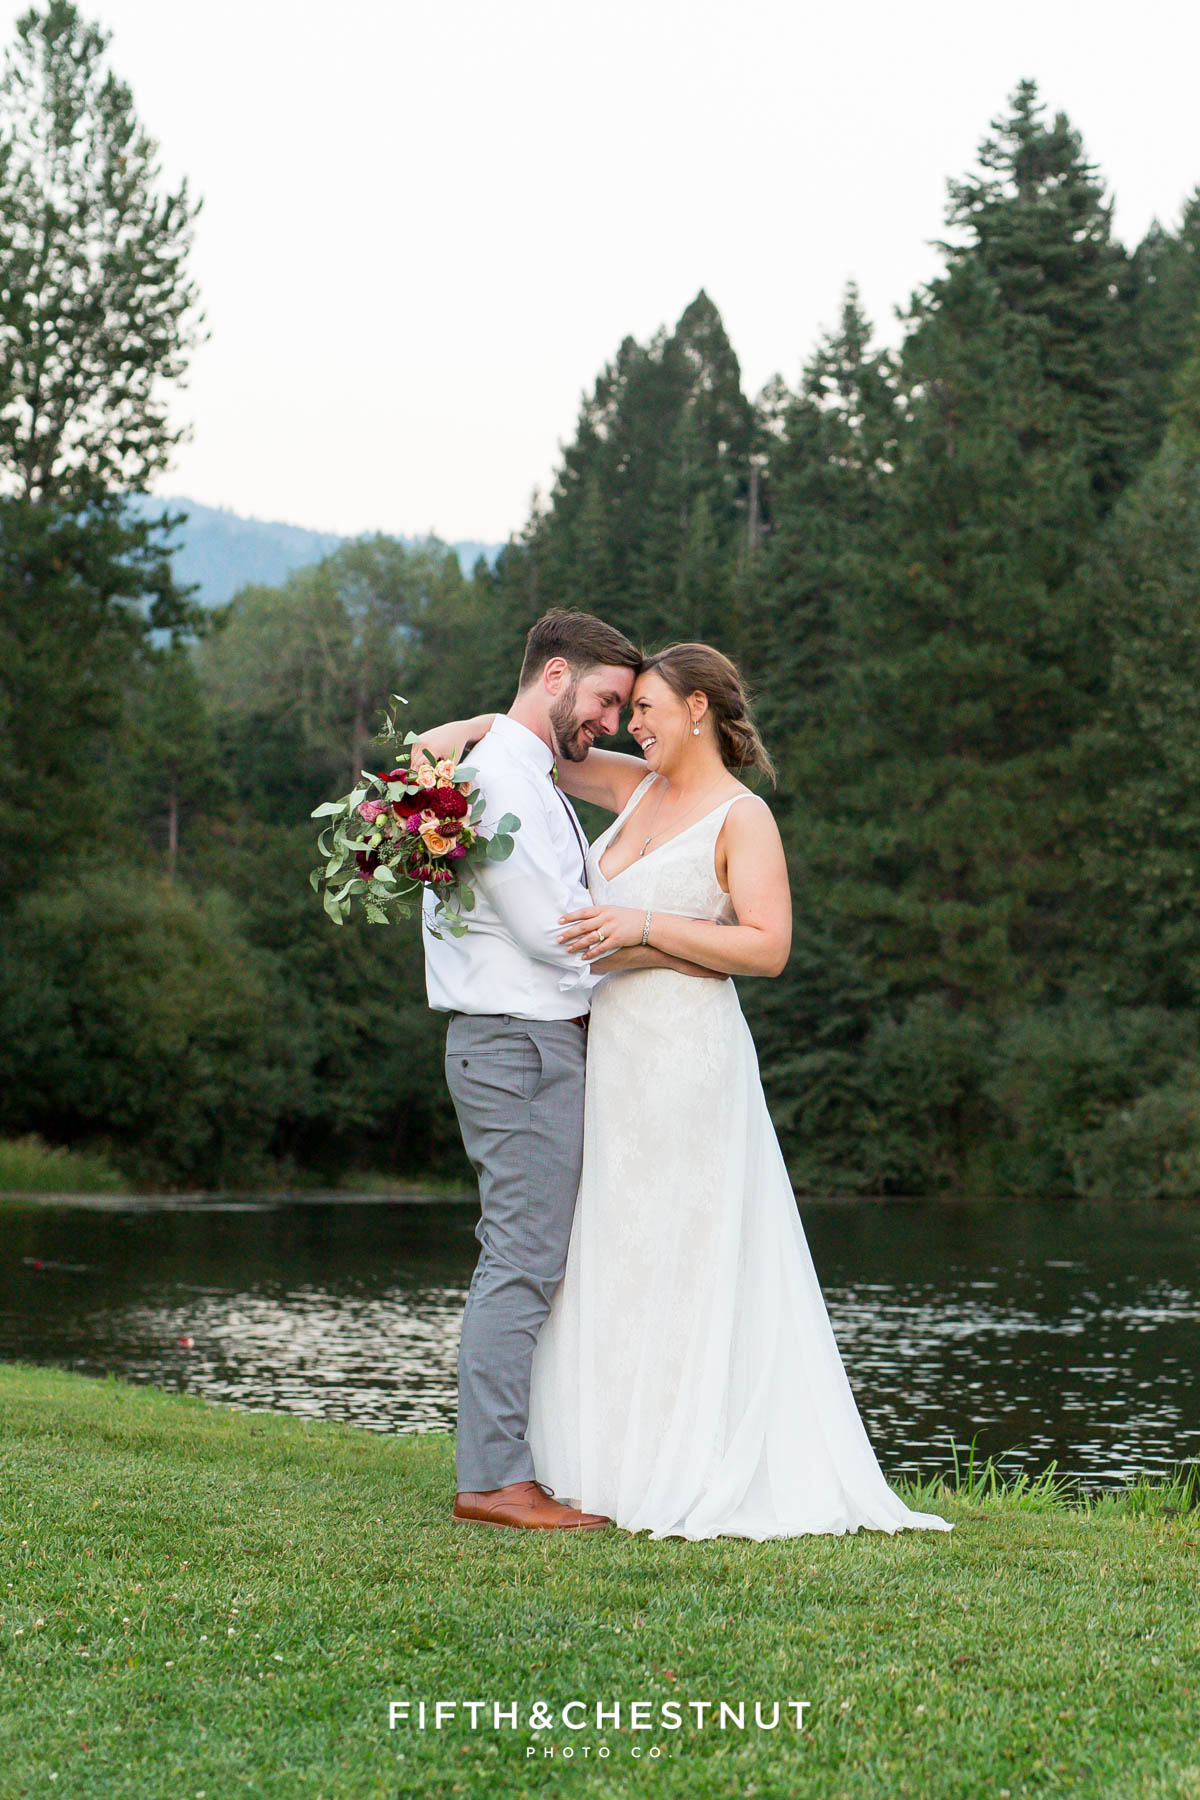 romantic portrait of bride and groom in front of a pond in Quincy, CA